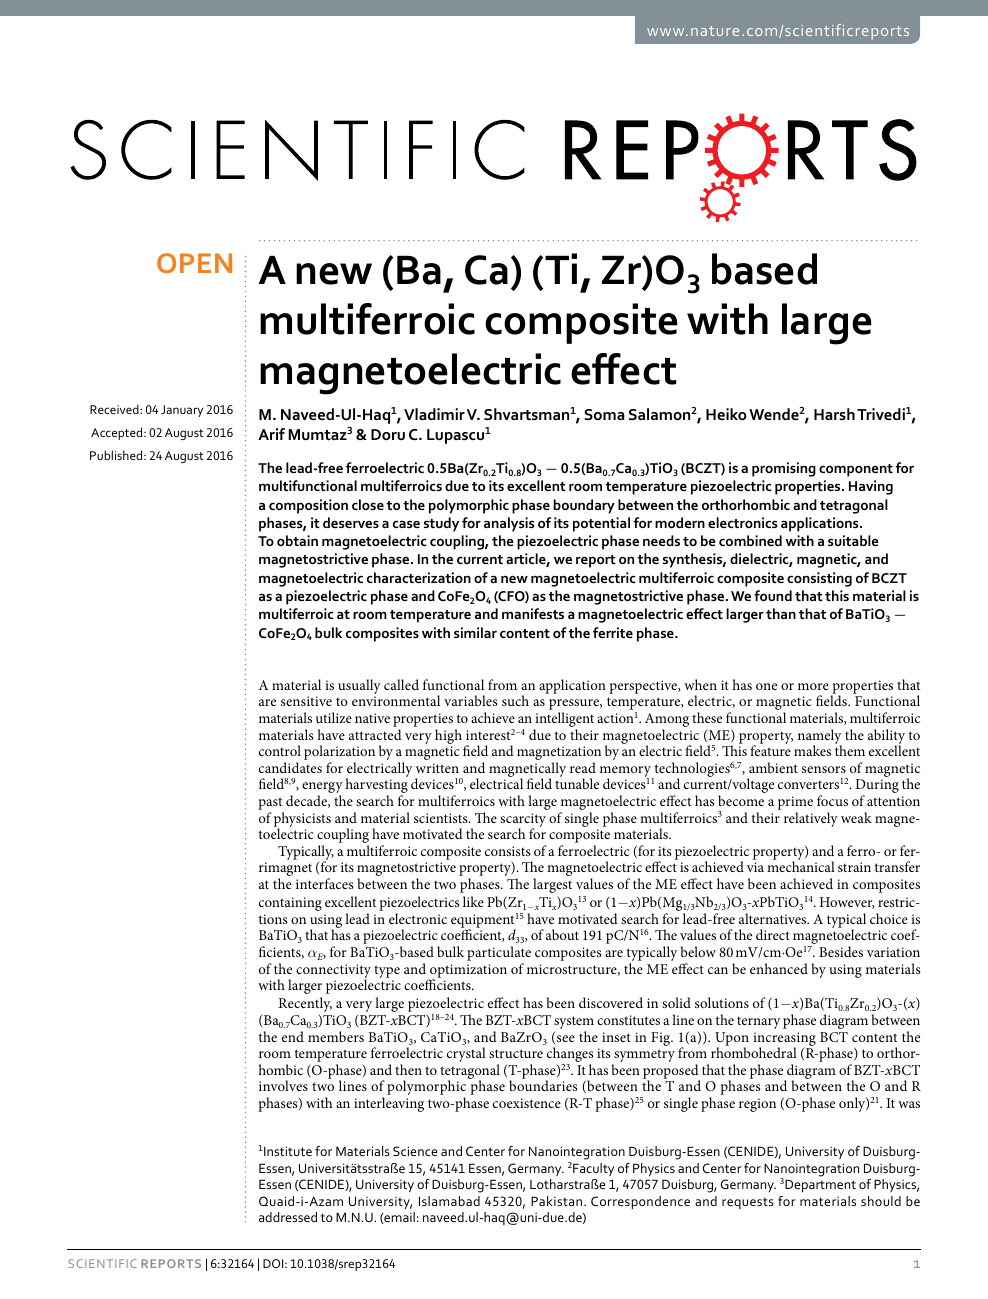 A new (Ba, Ca) (Ti, Zr)O3 based multiferroic composite with